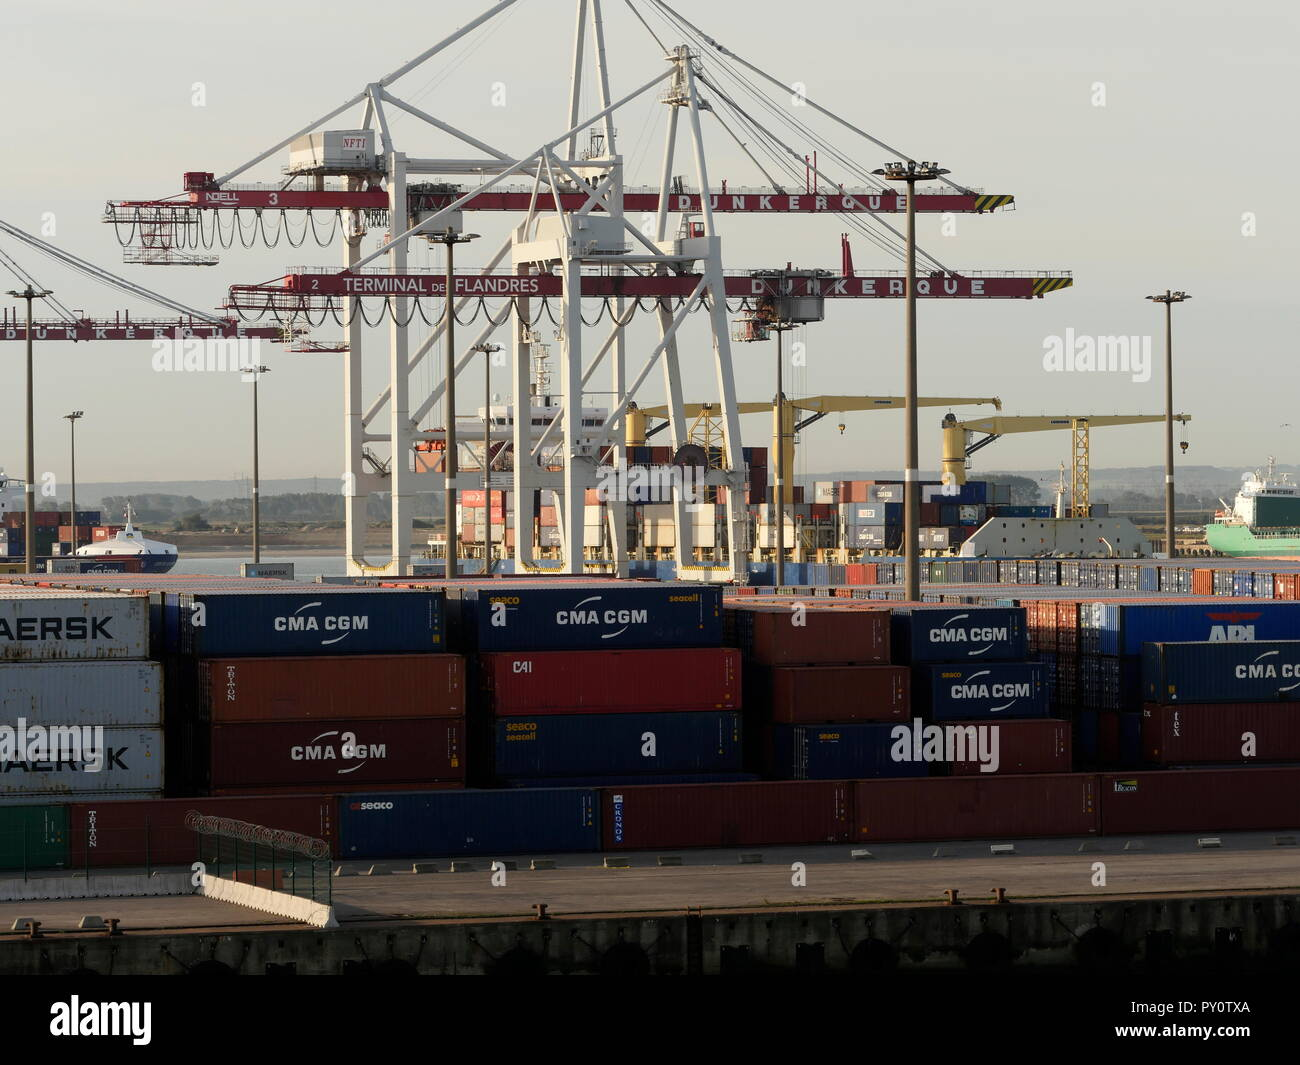 AJAXNETPHOTO. 2018. DUNKERQUE, FRANCE. - FREIGHT - CONTAINER BOXES STACKED ON THE QUAY. PHOTO:JONATHAN EASTLAND/AJAX REF:GX8 181909 333 Stock Photo